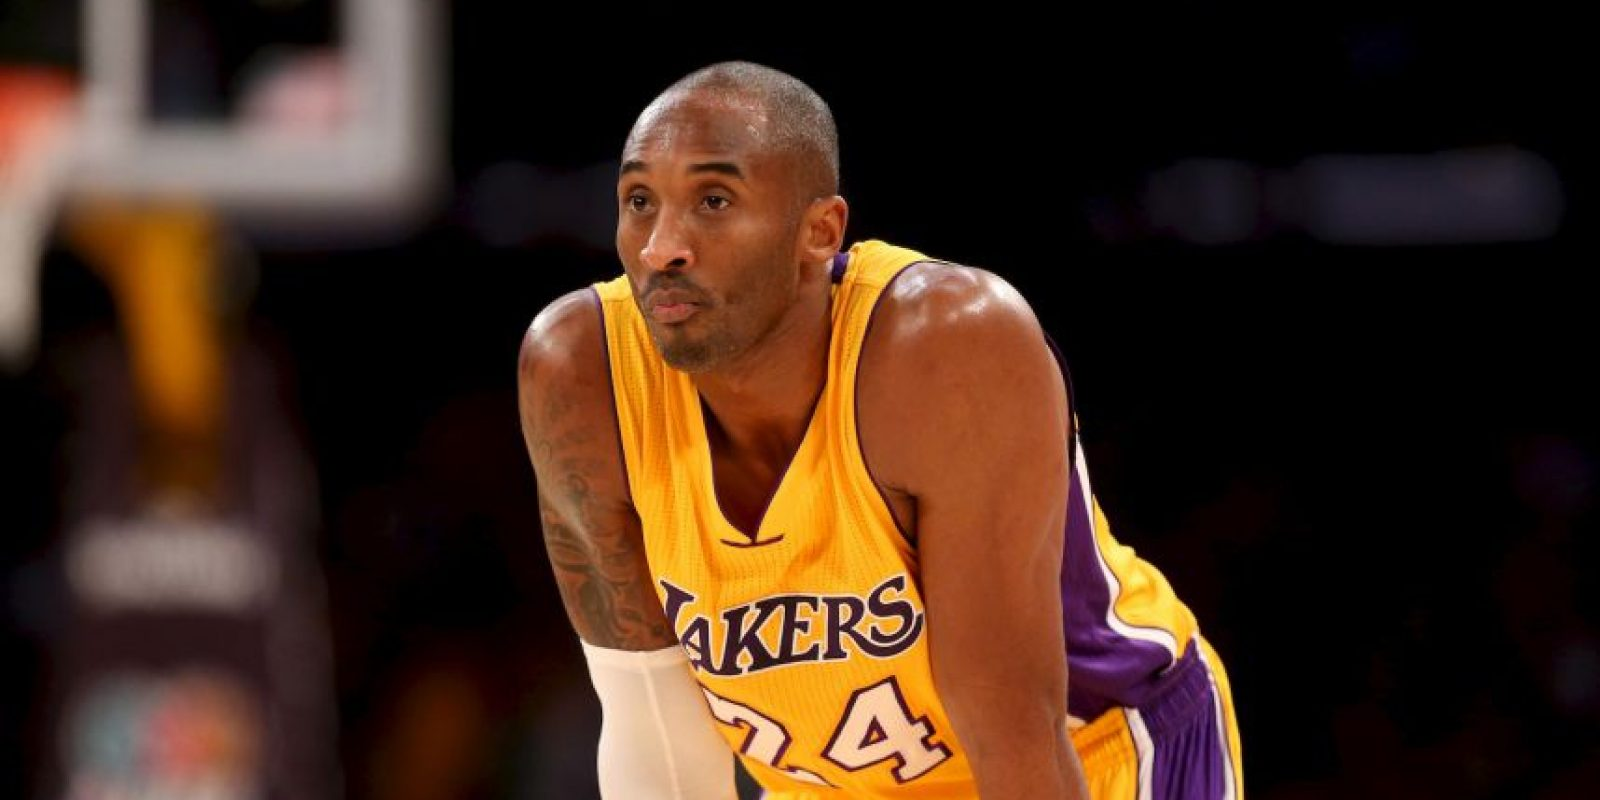 10. Kobe Bryant Foto: Getty Images